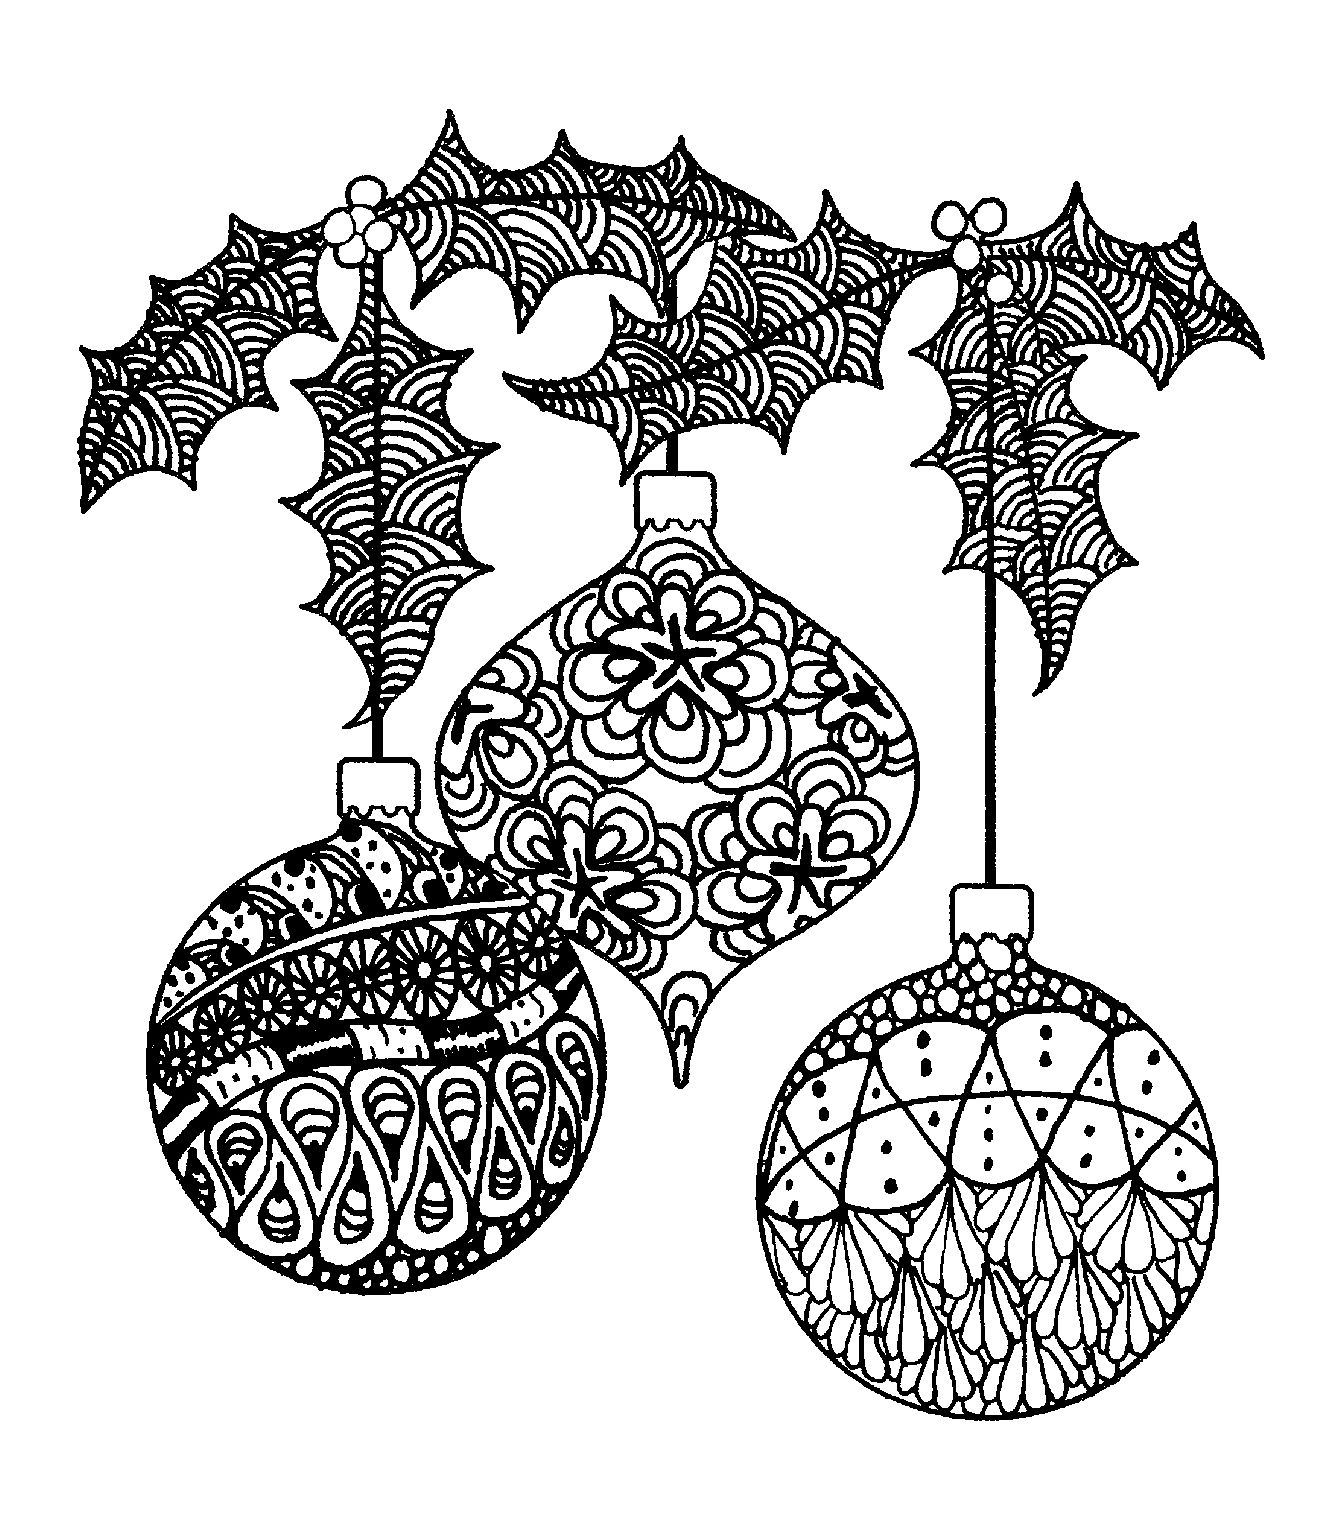 Magenta Zentangle Ornaments Rubber Cling StampsMagenta Zentangle ...